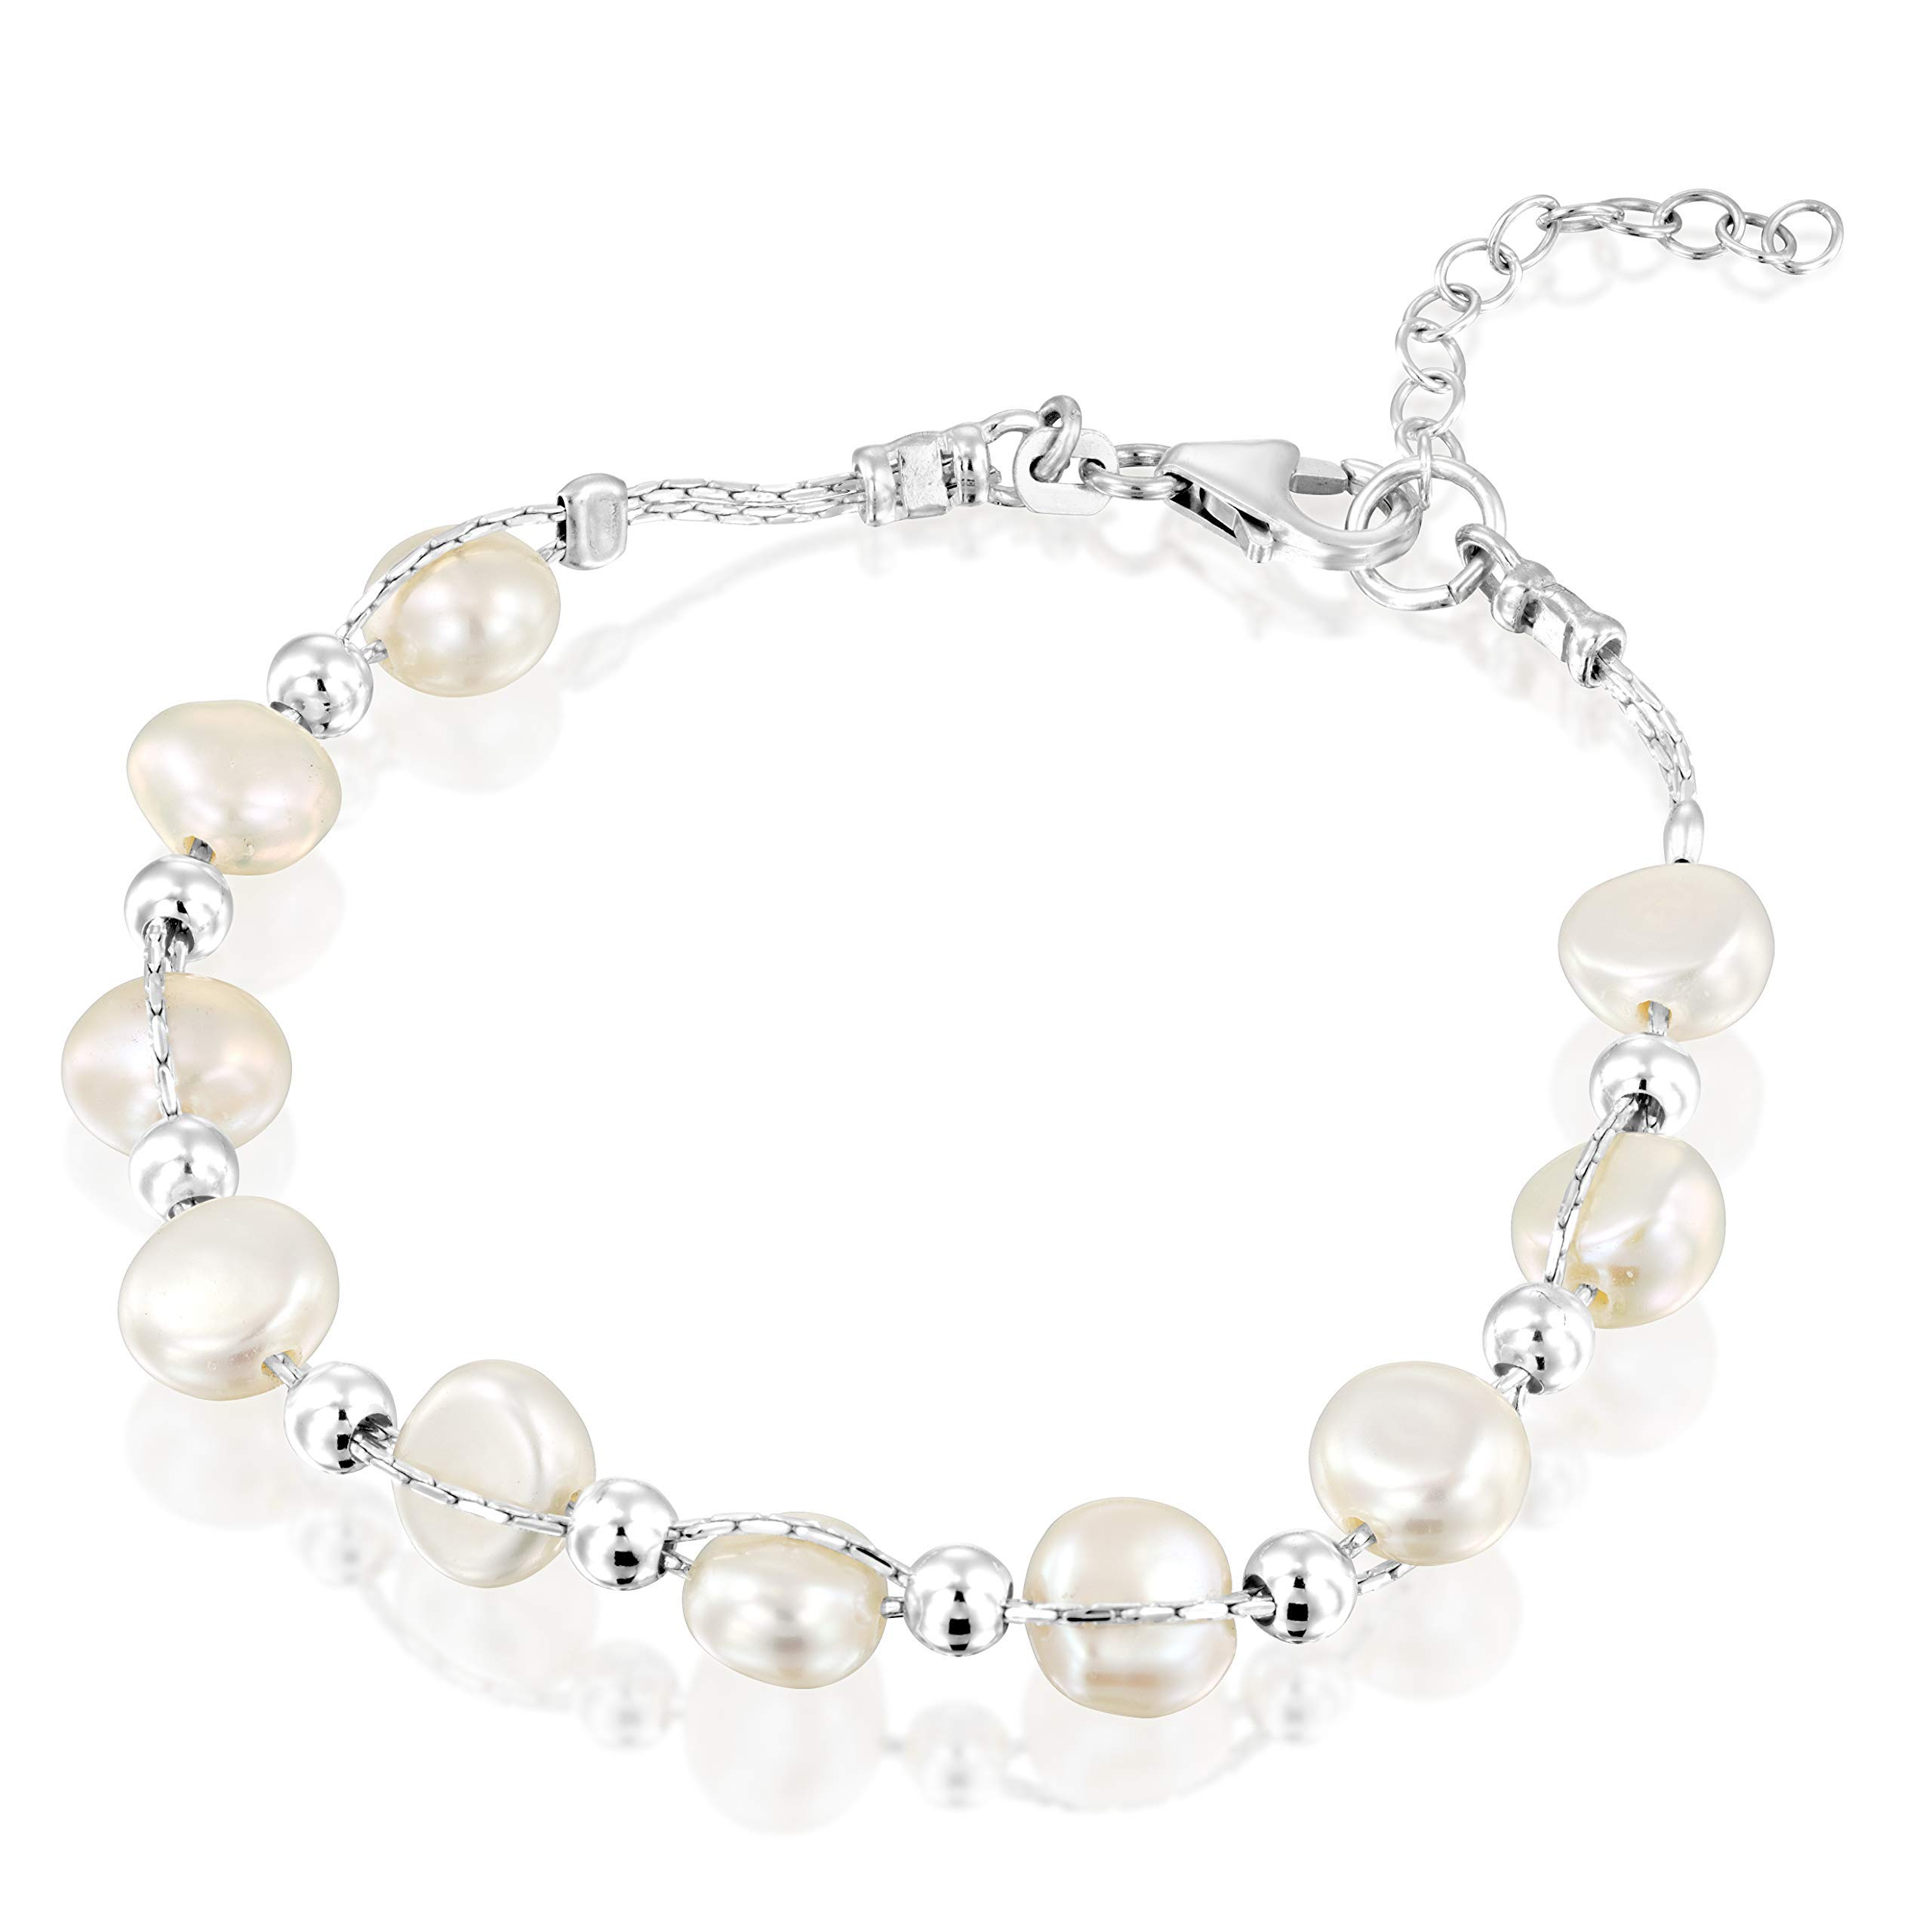 Interwoven Cultured White Pearls and Sterling Beads Silver Bracelet 7.3'' plus 1.2'' extention by DiDaDo